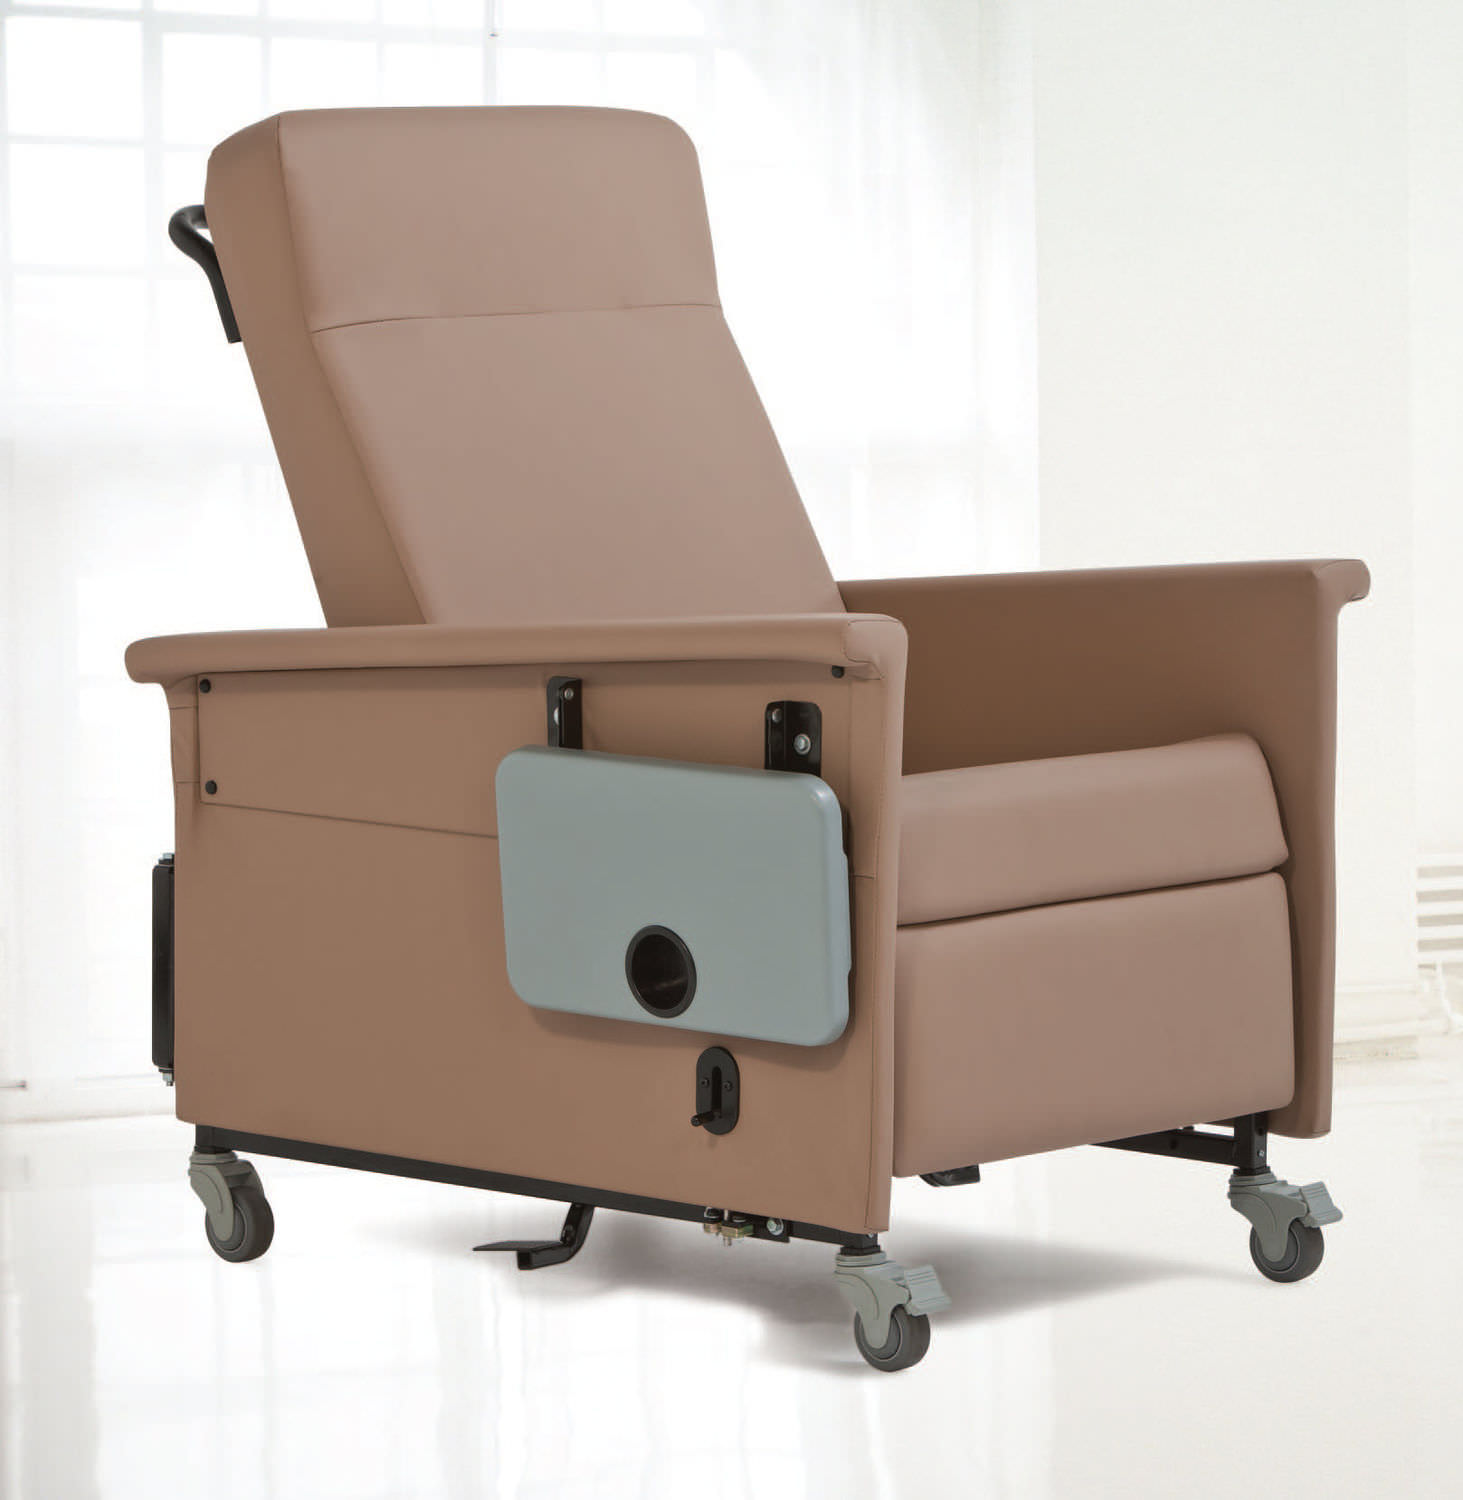 Reclining patient chair on casters with legrest